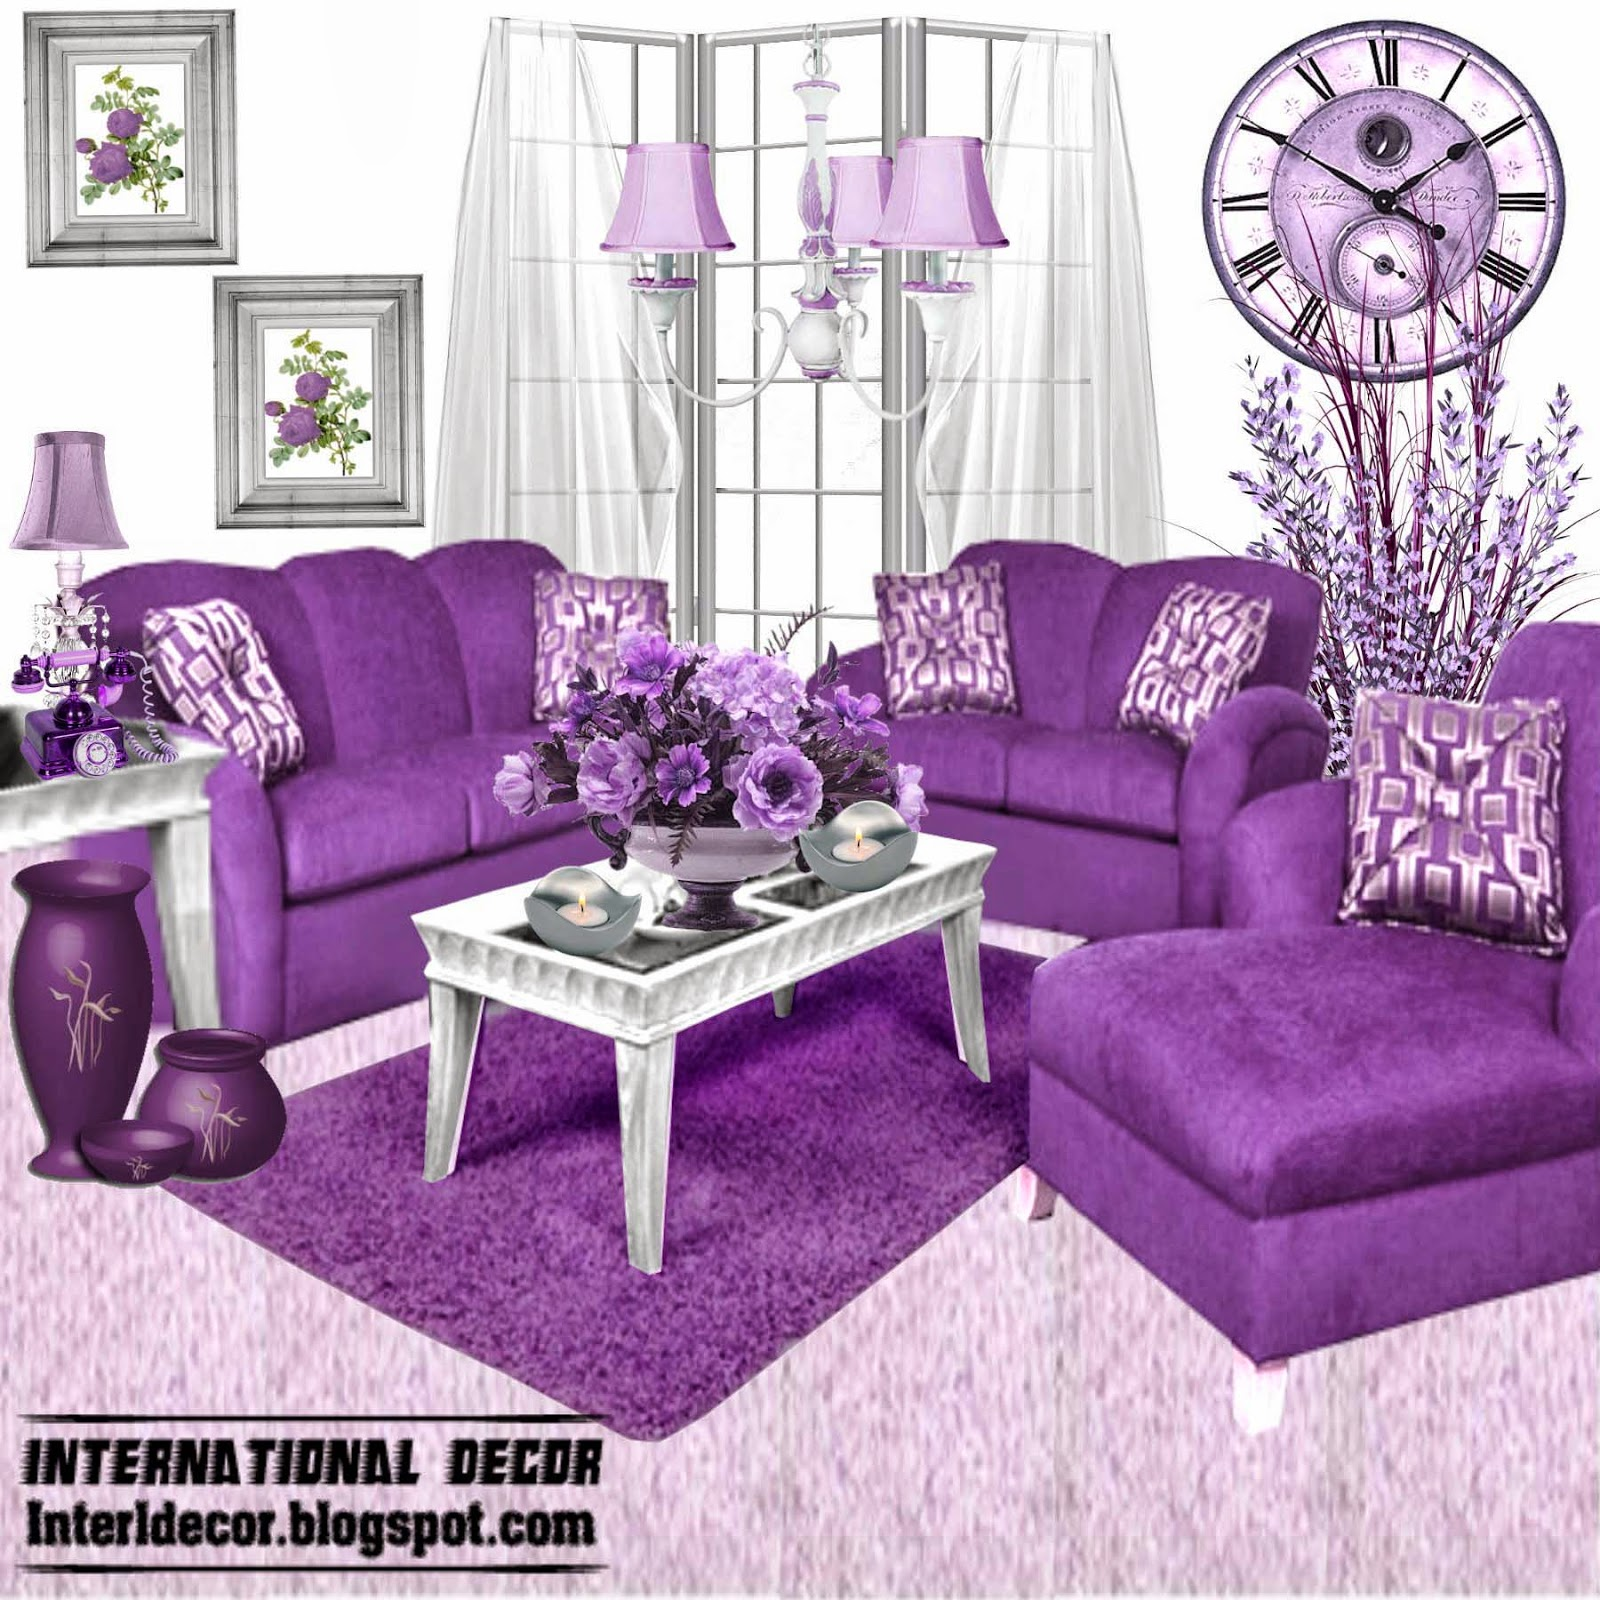 Living Room Sofa Set : Luxury purple furniture, sets, sofas, chairs for living ...